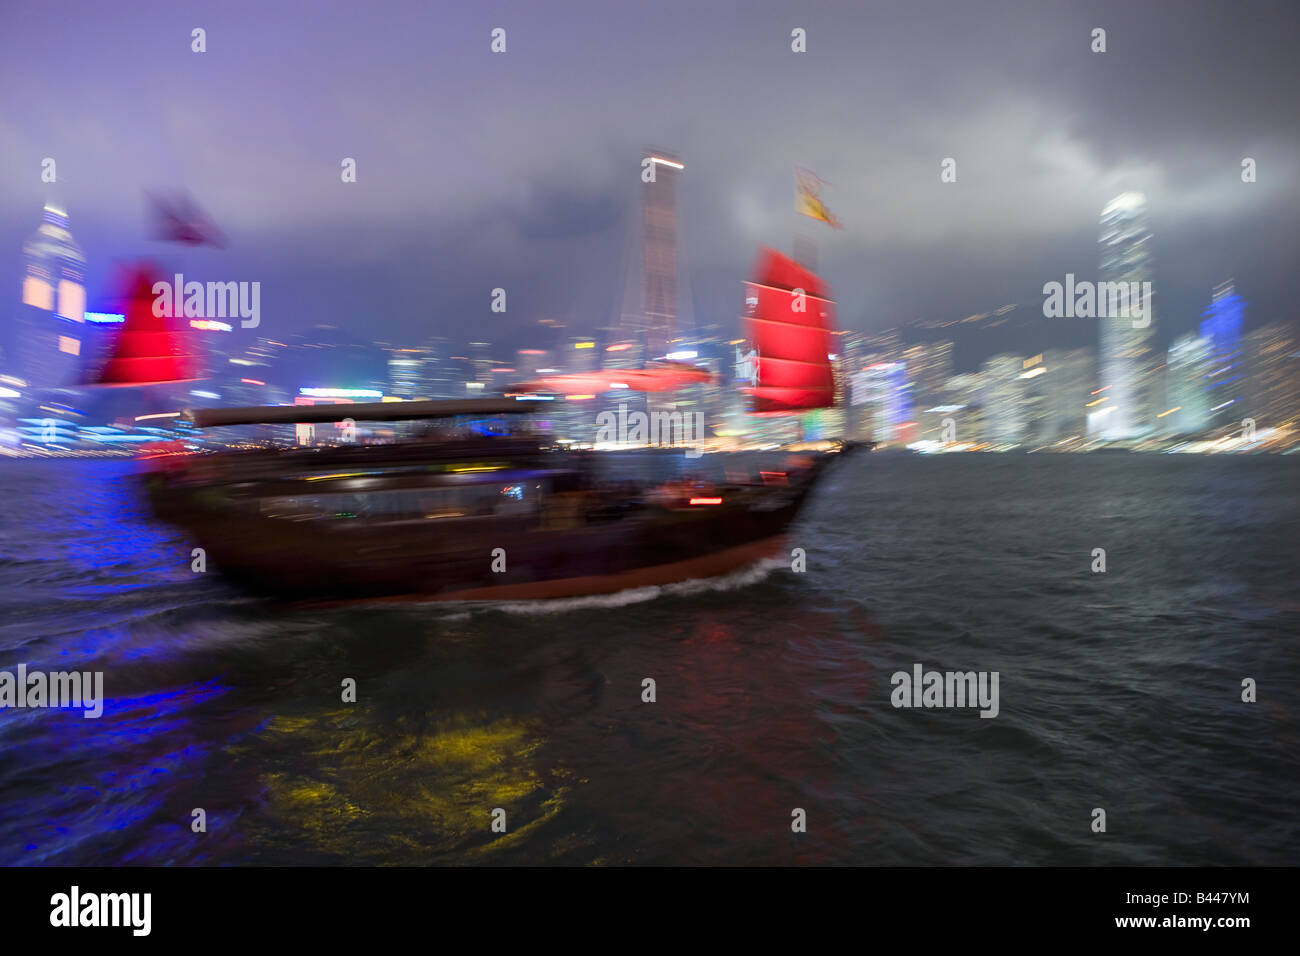 Chine Hong Kong Skyline et Jonque Chinoise vu de Kowloon au crépuscule Photo Stock